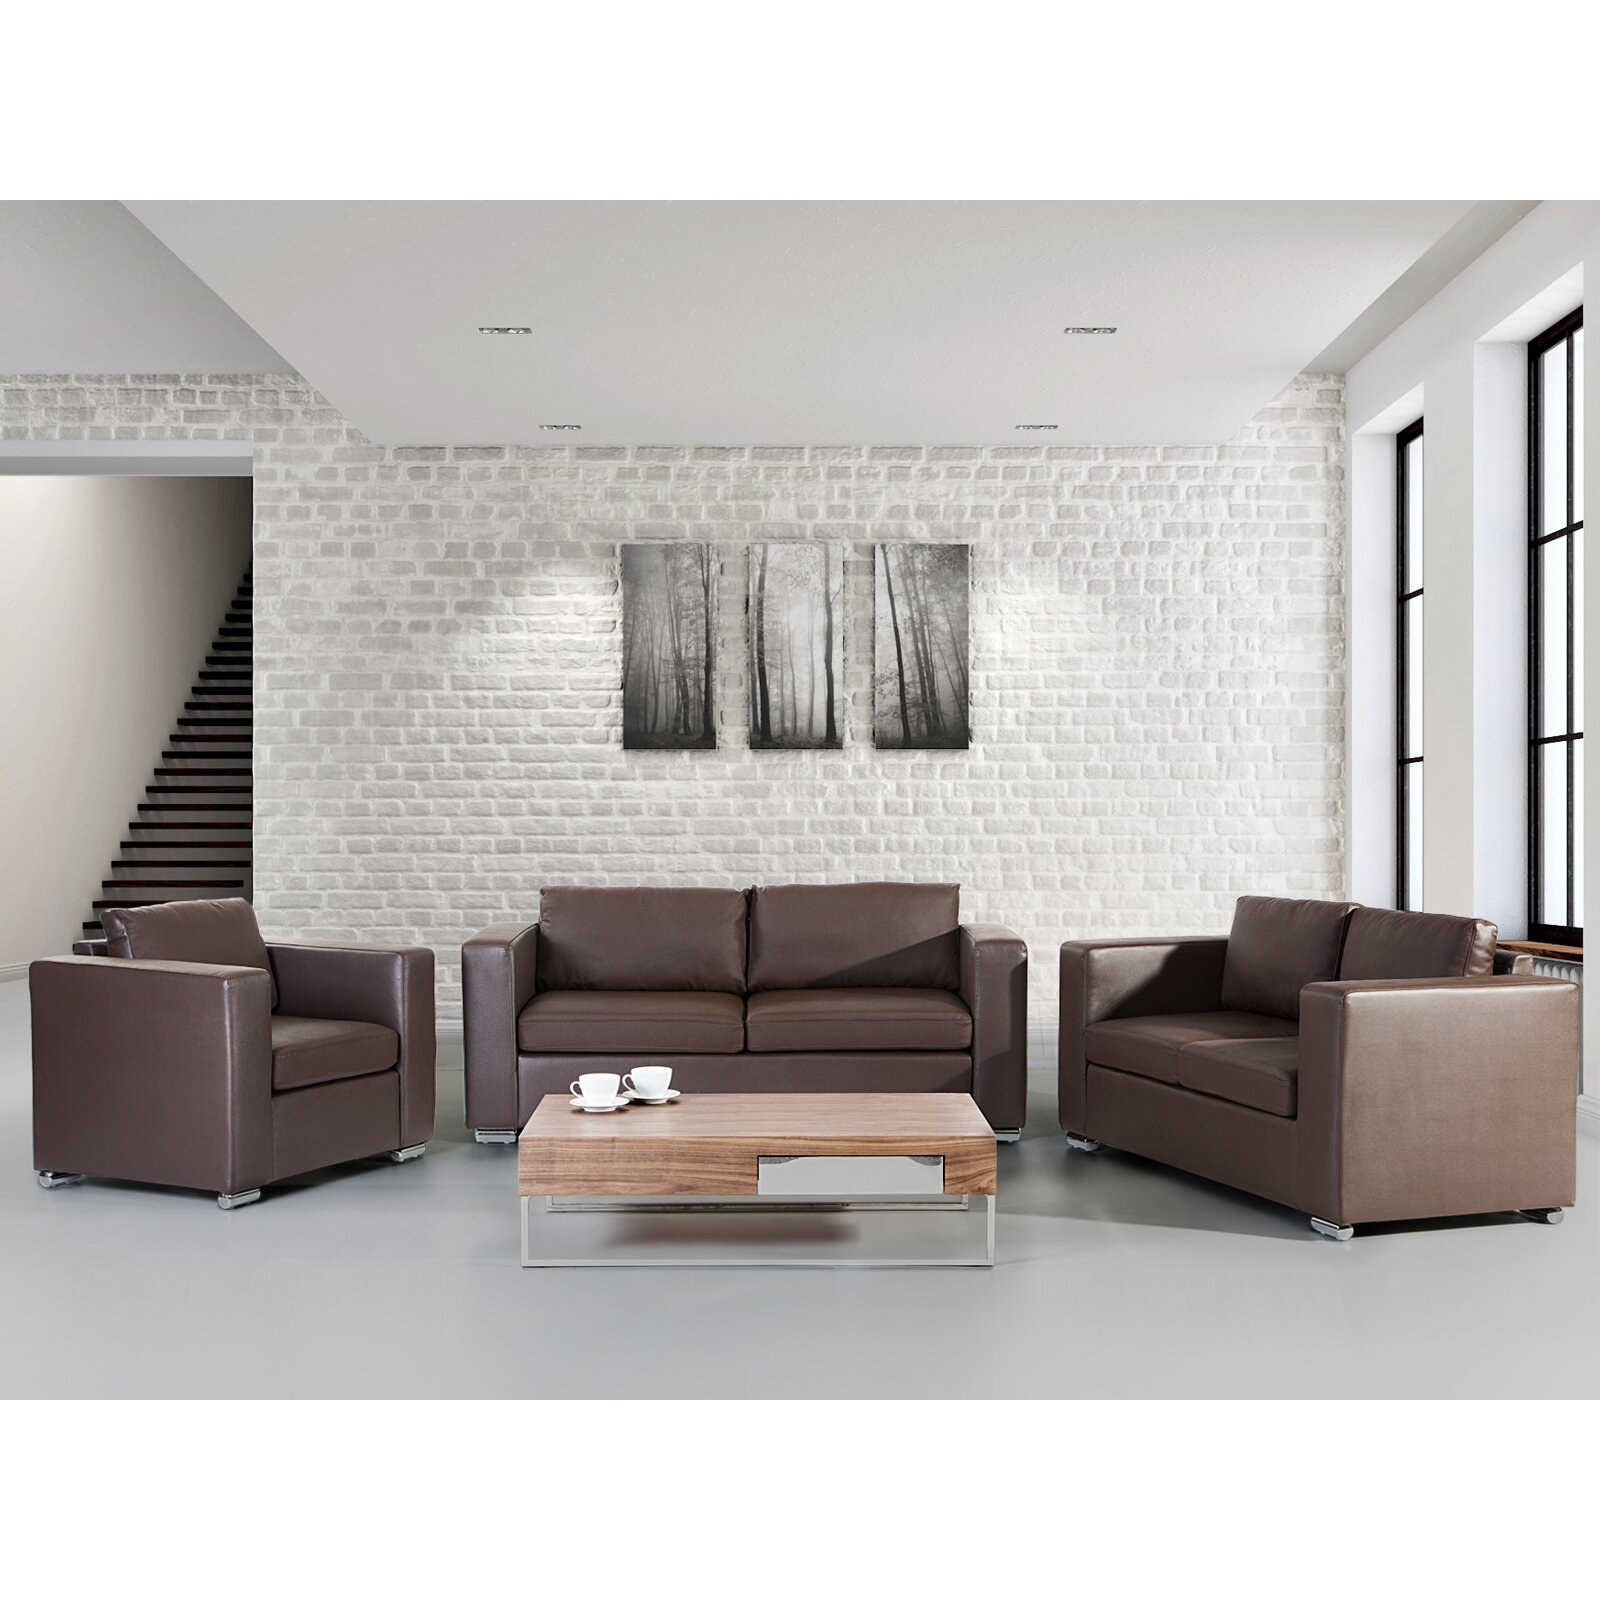 Home Haus Helsinki Leather Sofa Set Reviews Wayfair Uk